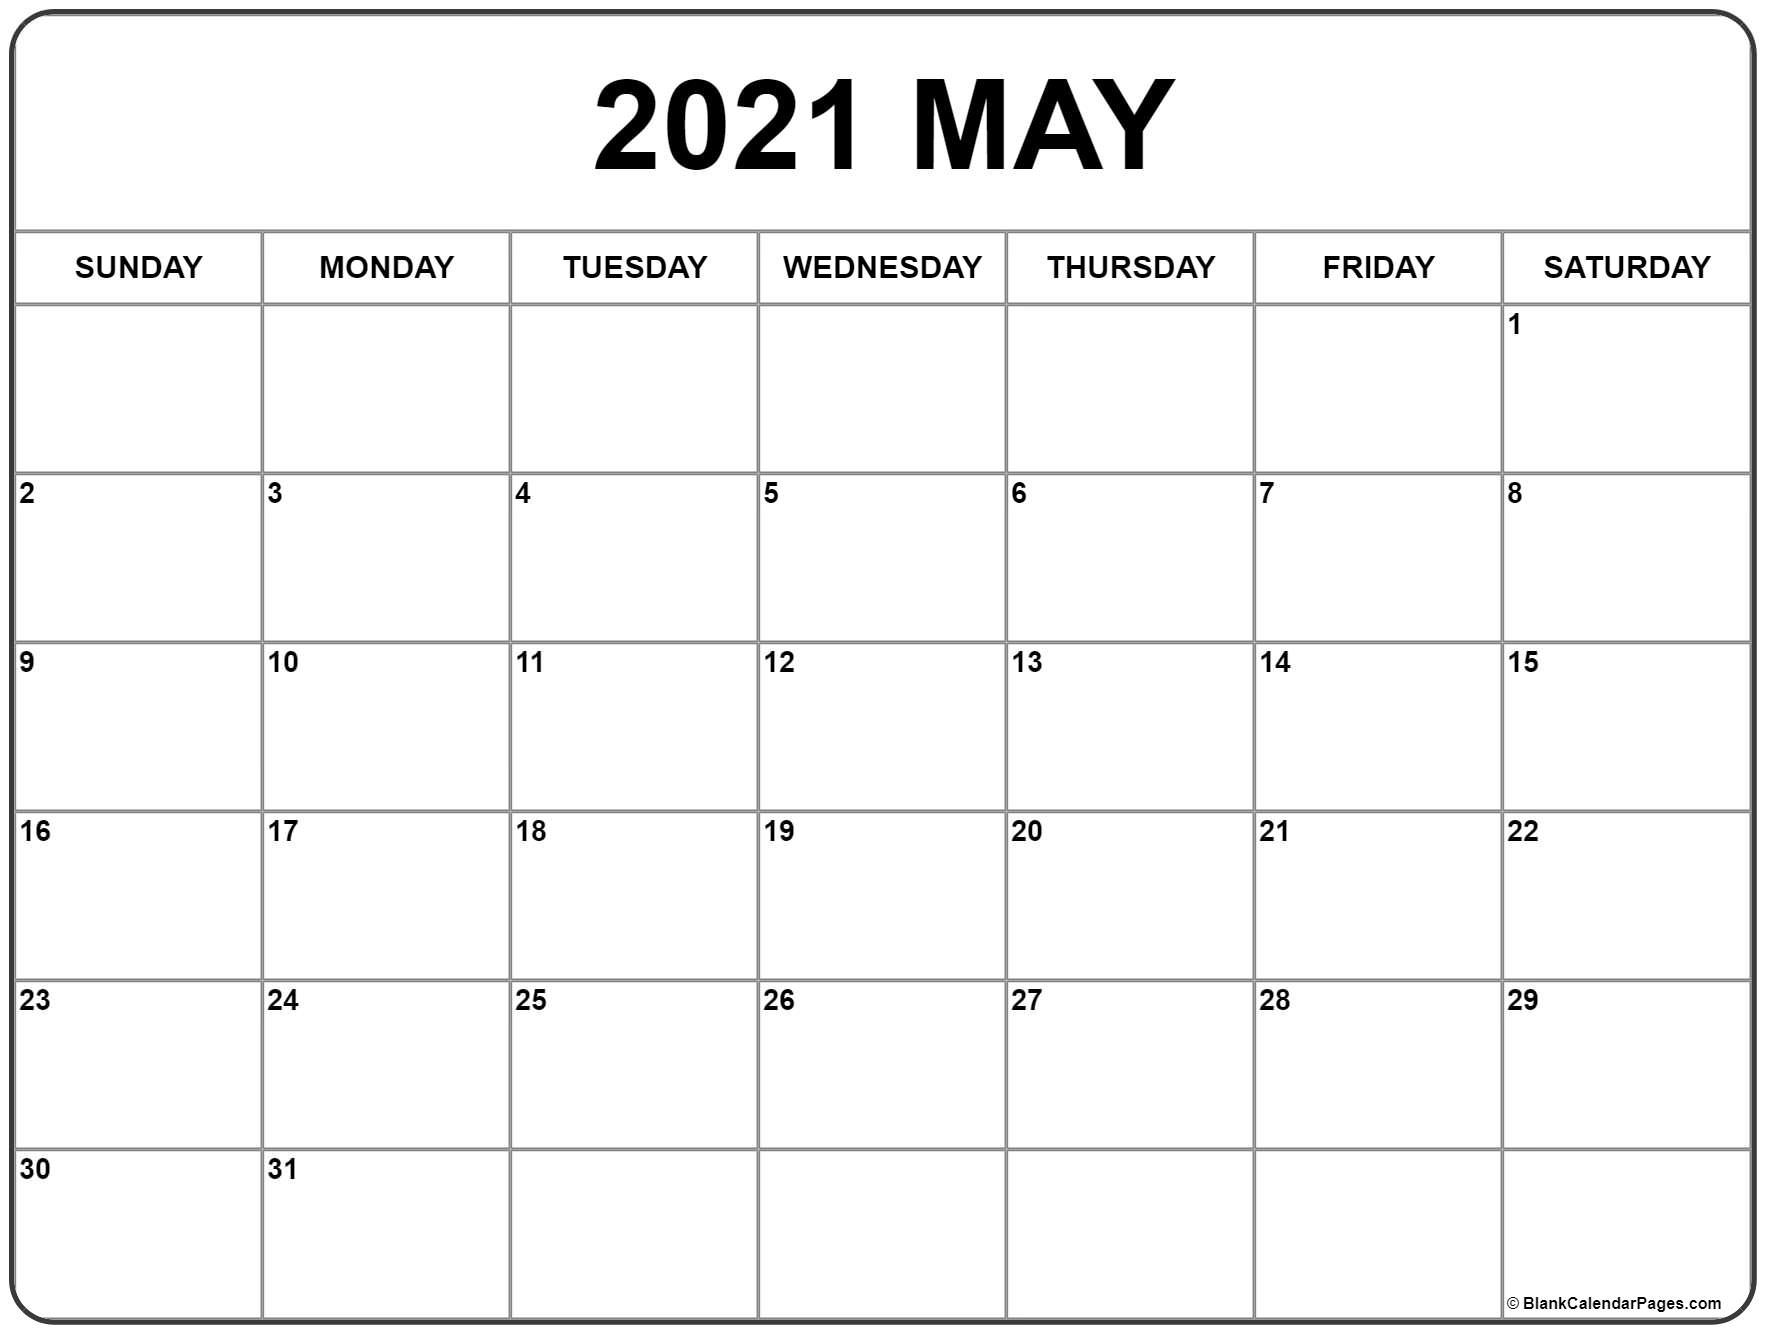 May 2021 Weekly Calendar Wallpaper